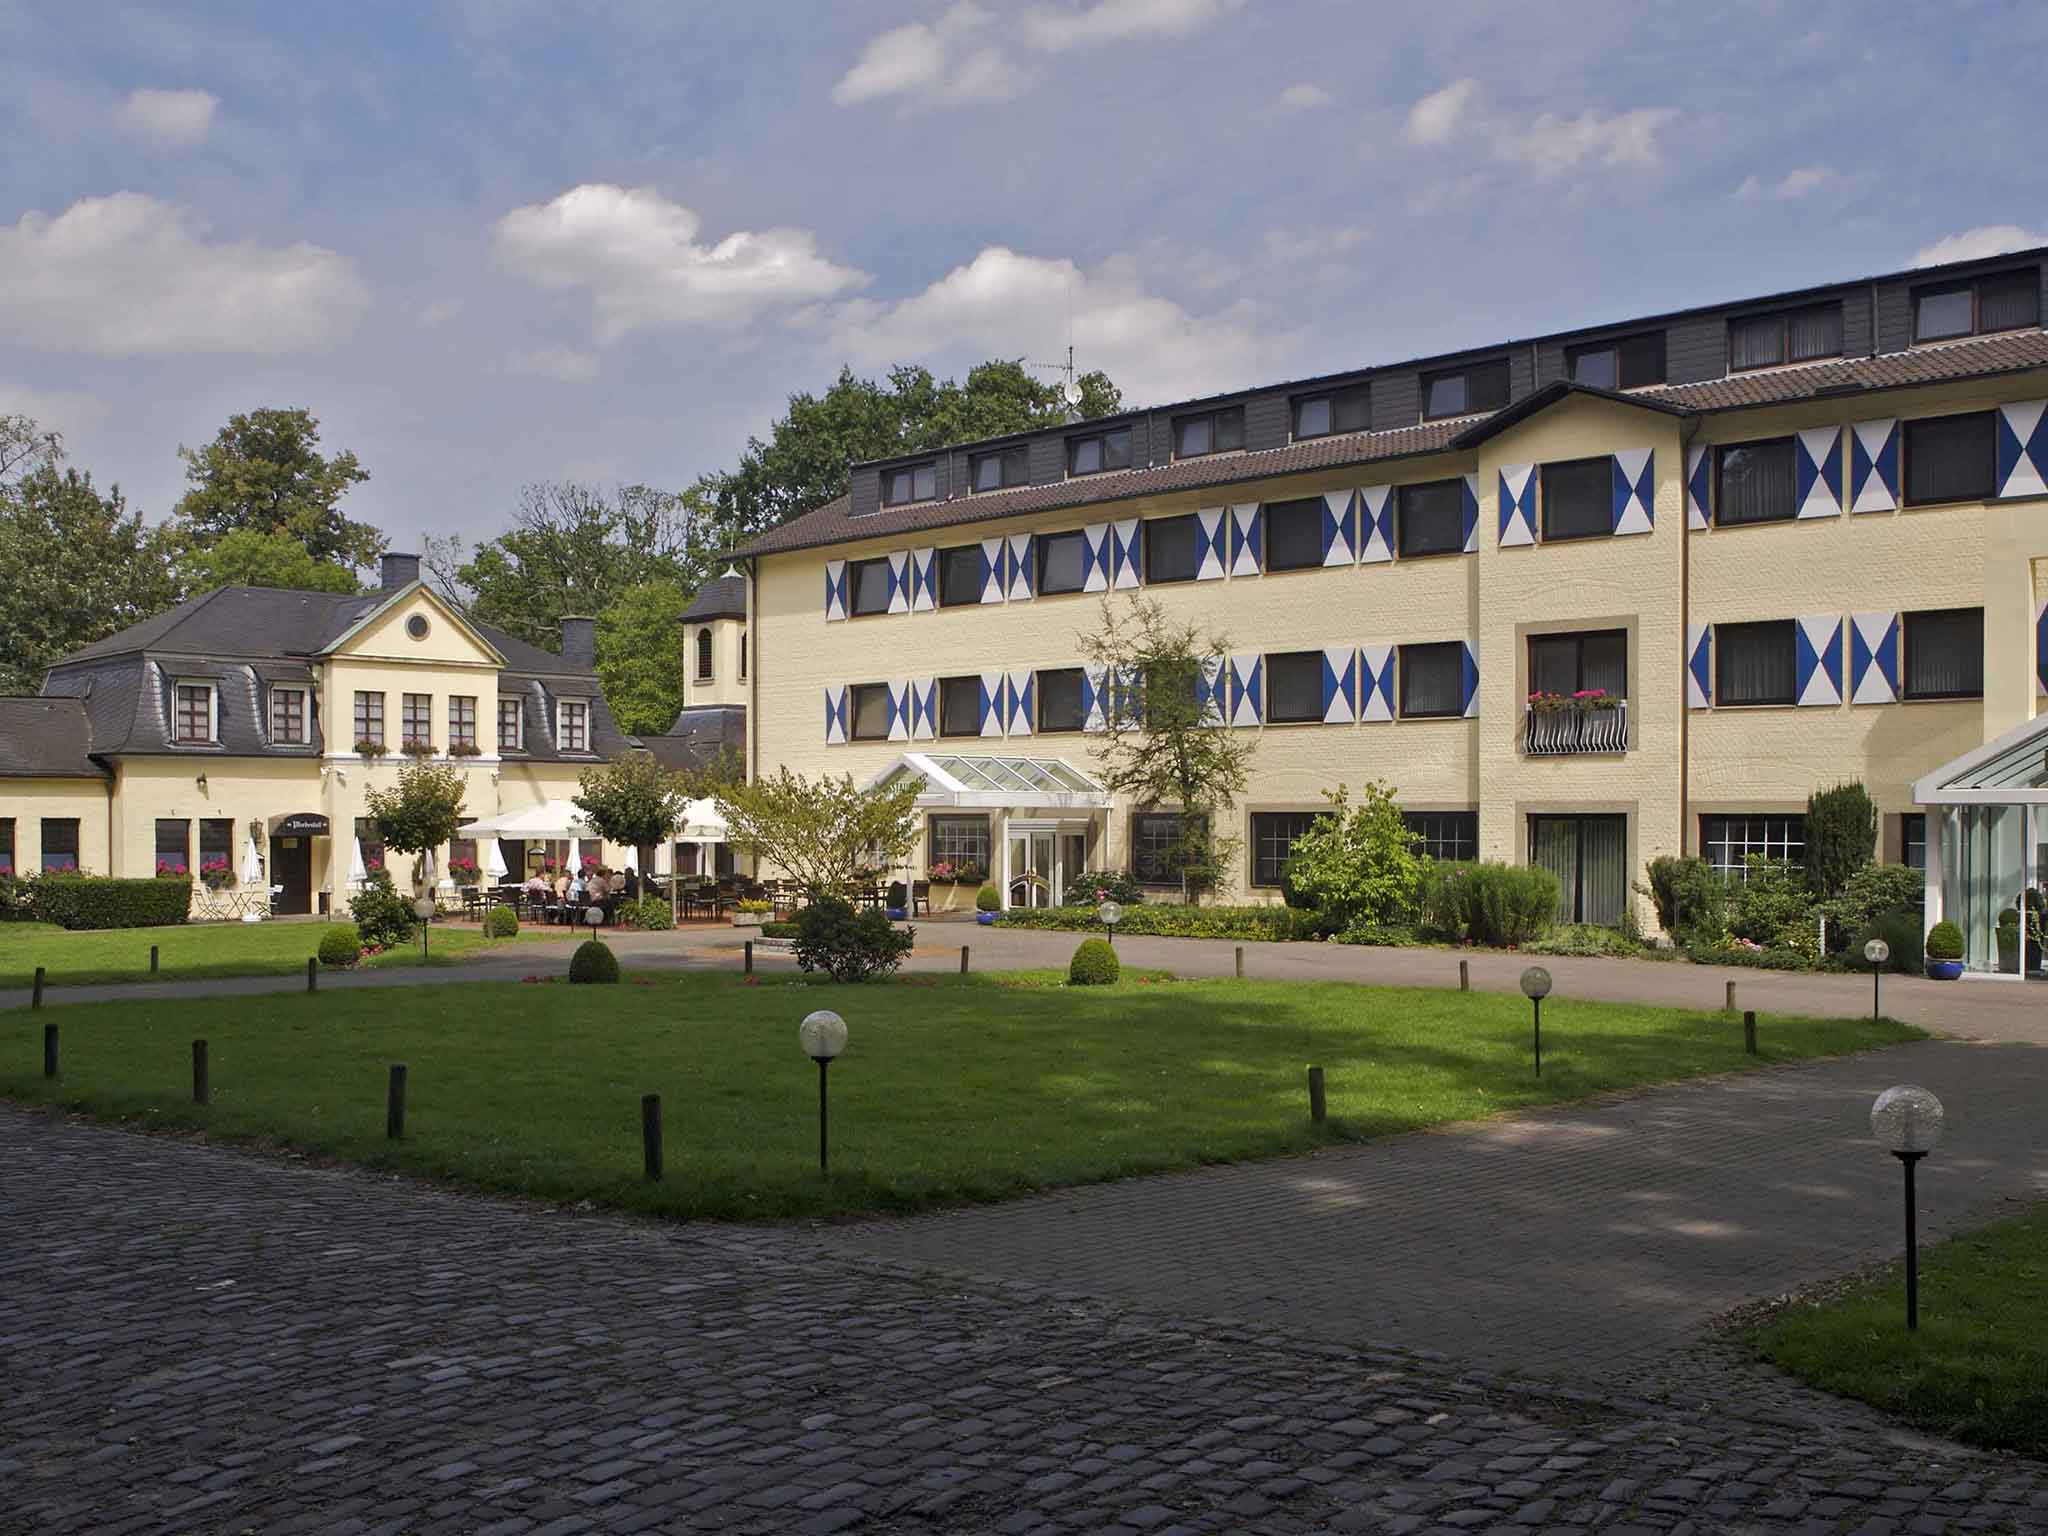 Hotel in munster parkhotel hohenfeld m nster for Hotel munster schwimmbad